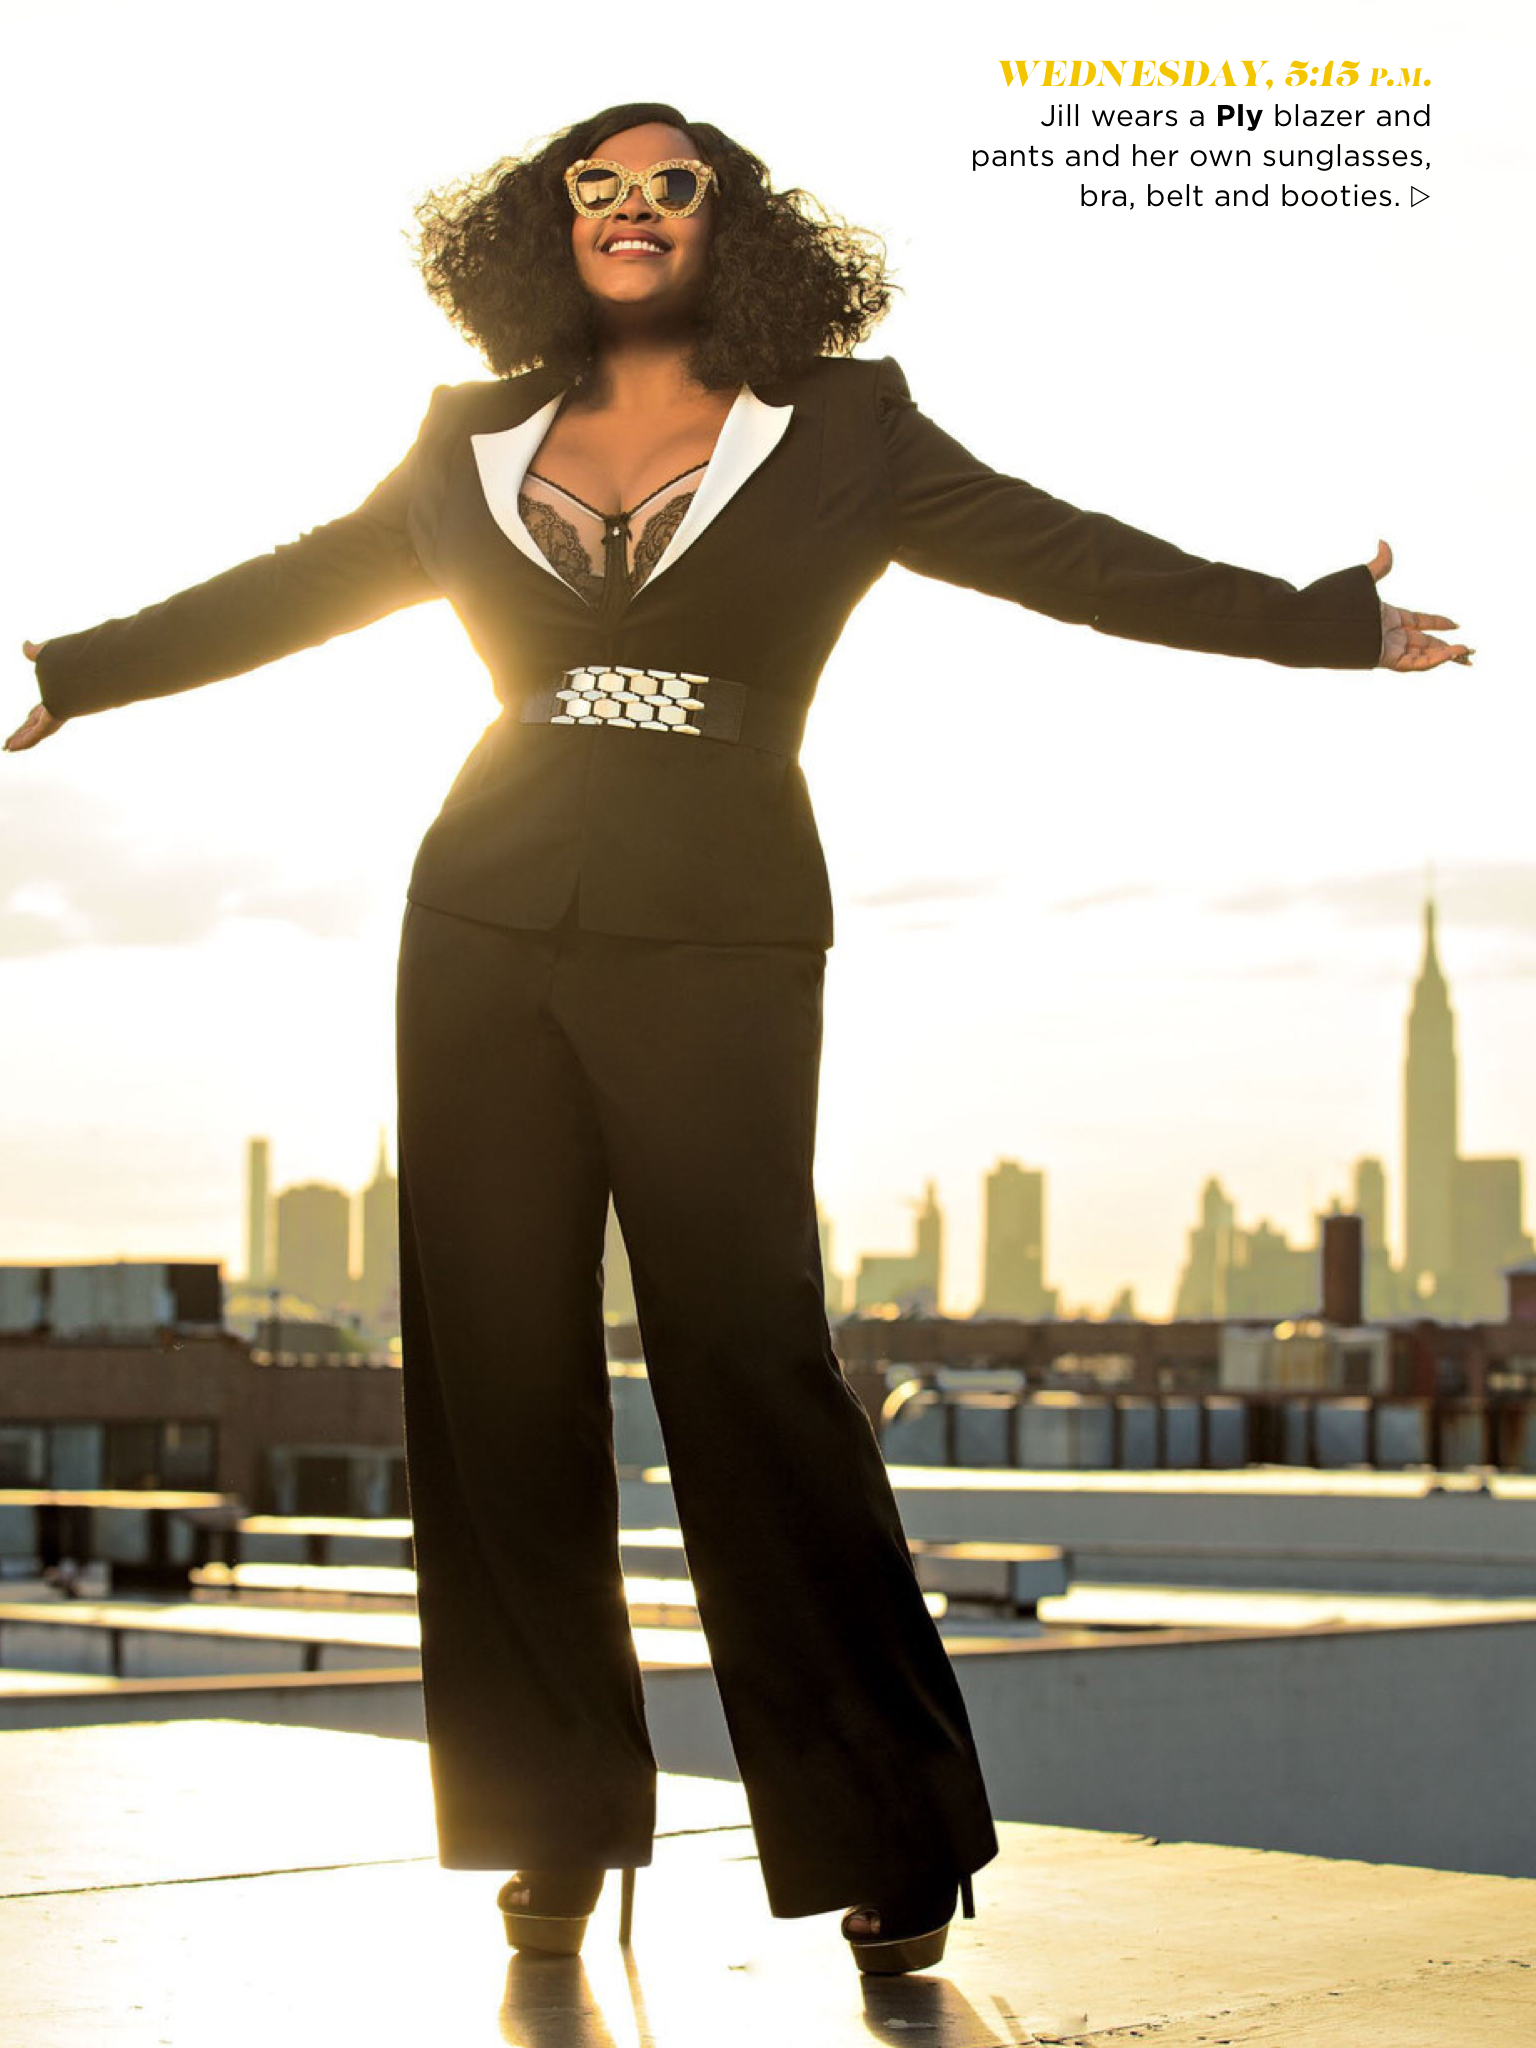 Jill Scott is wearing PLY jacket style #500http://www.plyapparel.com/shop-ready-to-wear/style-500 and PLY troupe style #301http://www.plyapparel.com/shop-ready-to-wear/trouser-style-301. Click the links to pre-order yours now....